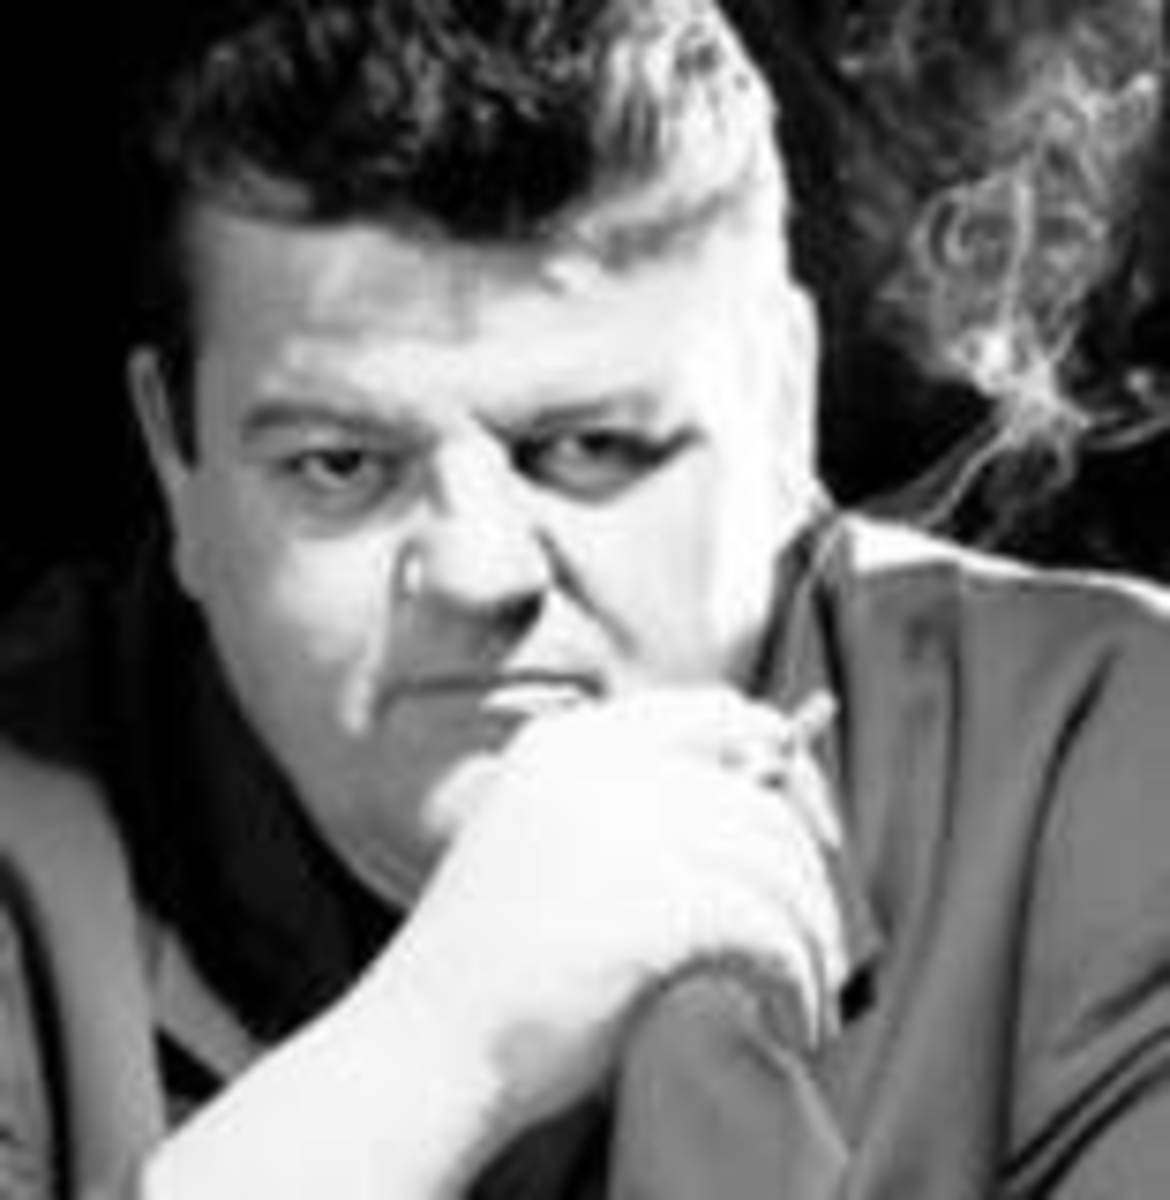 Robbie Coltrane as Cracker